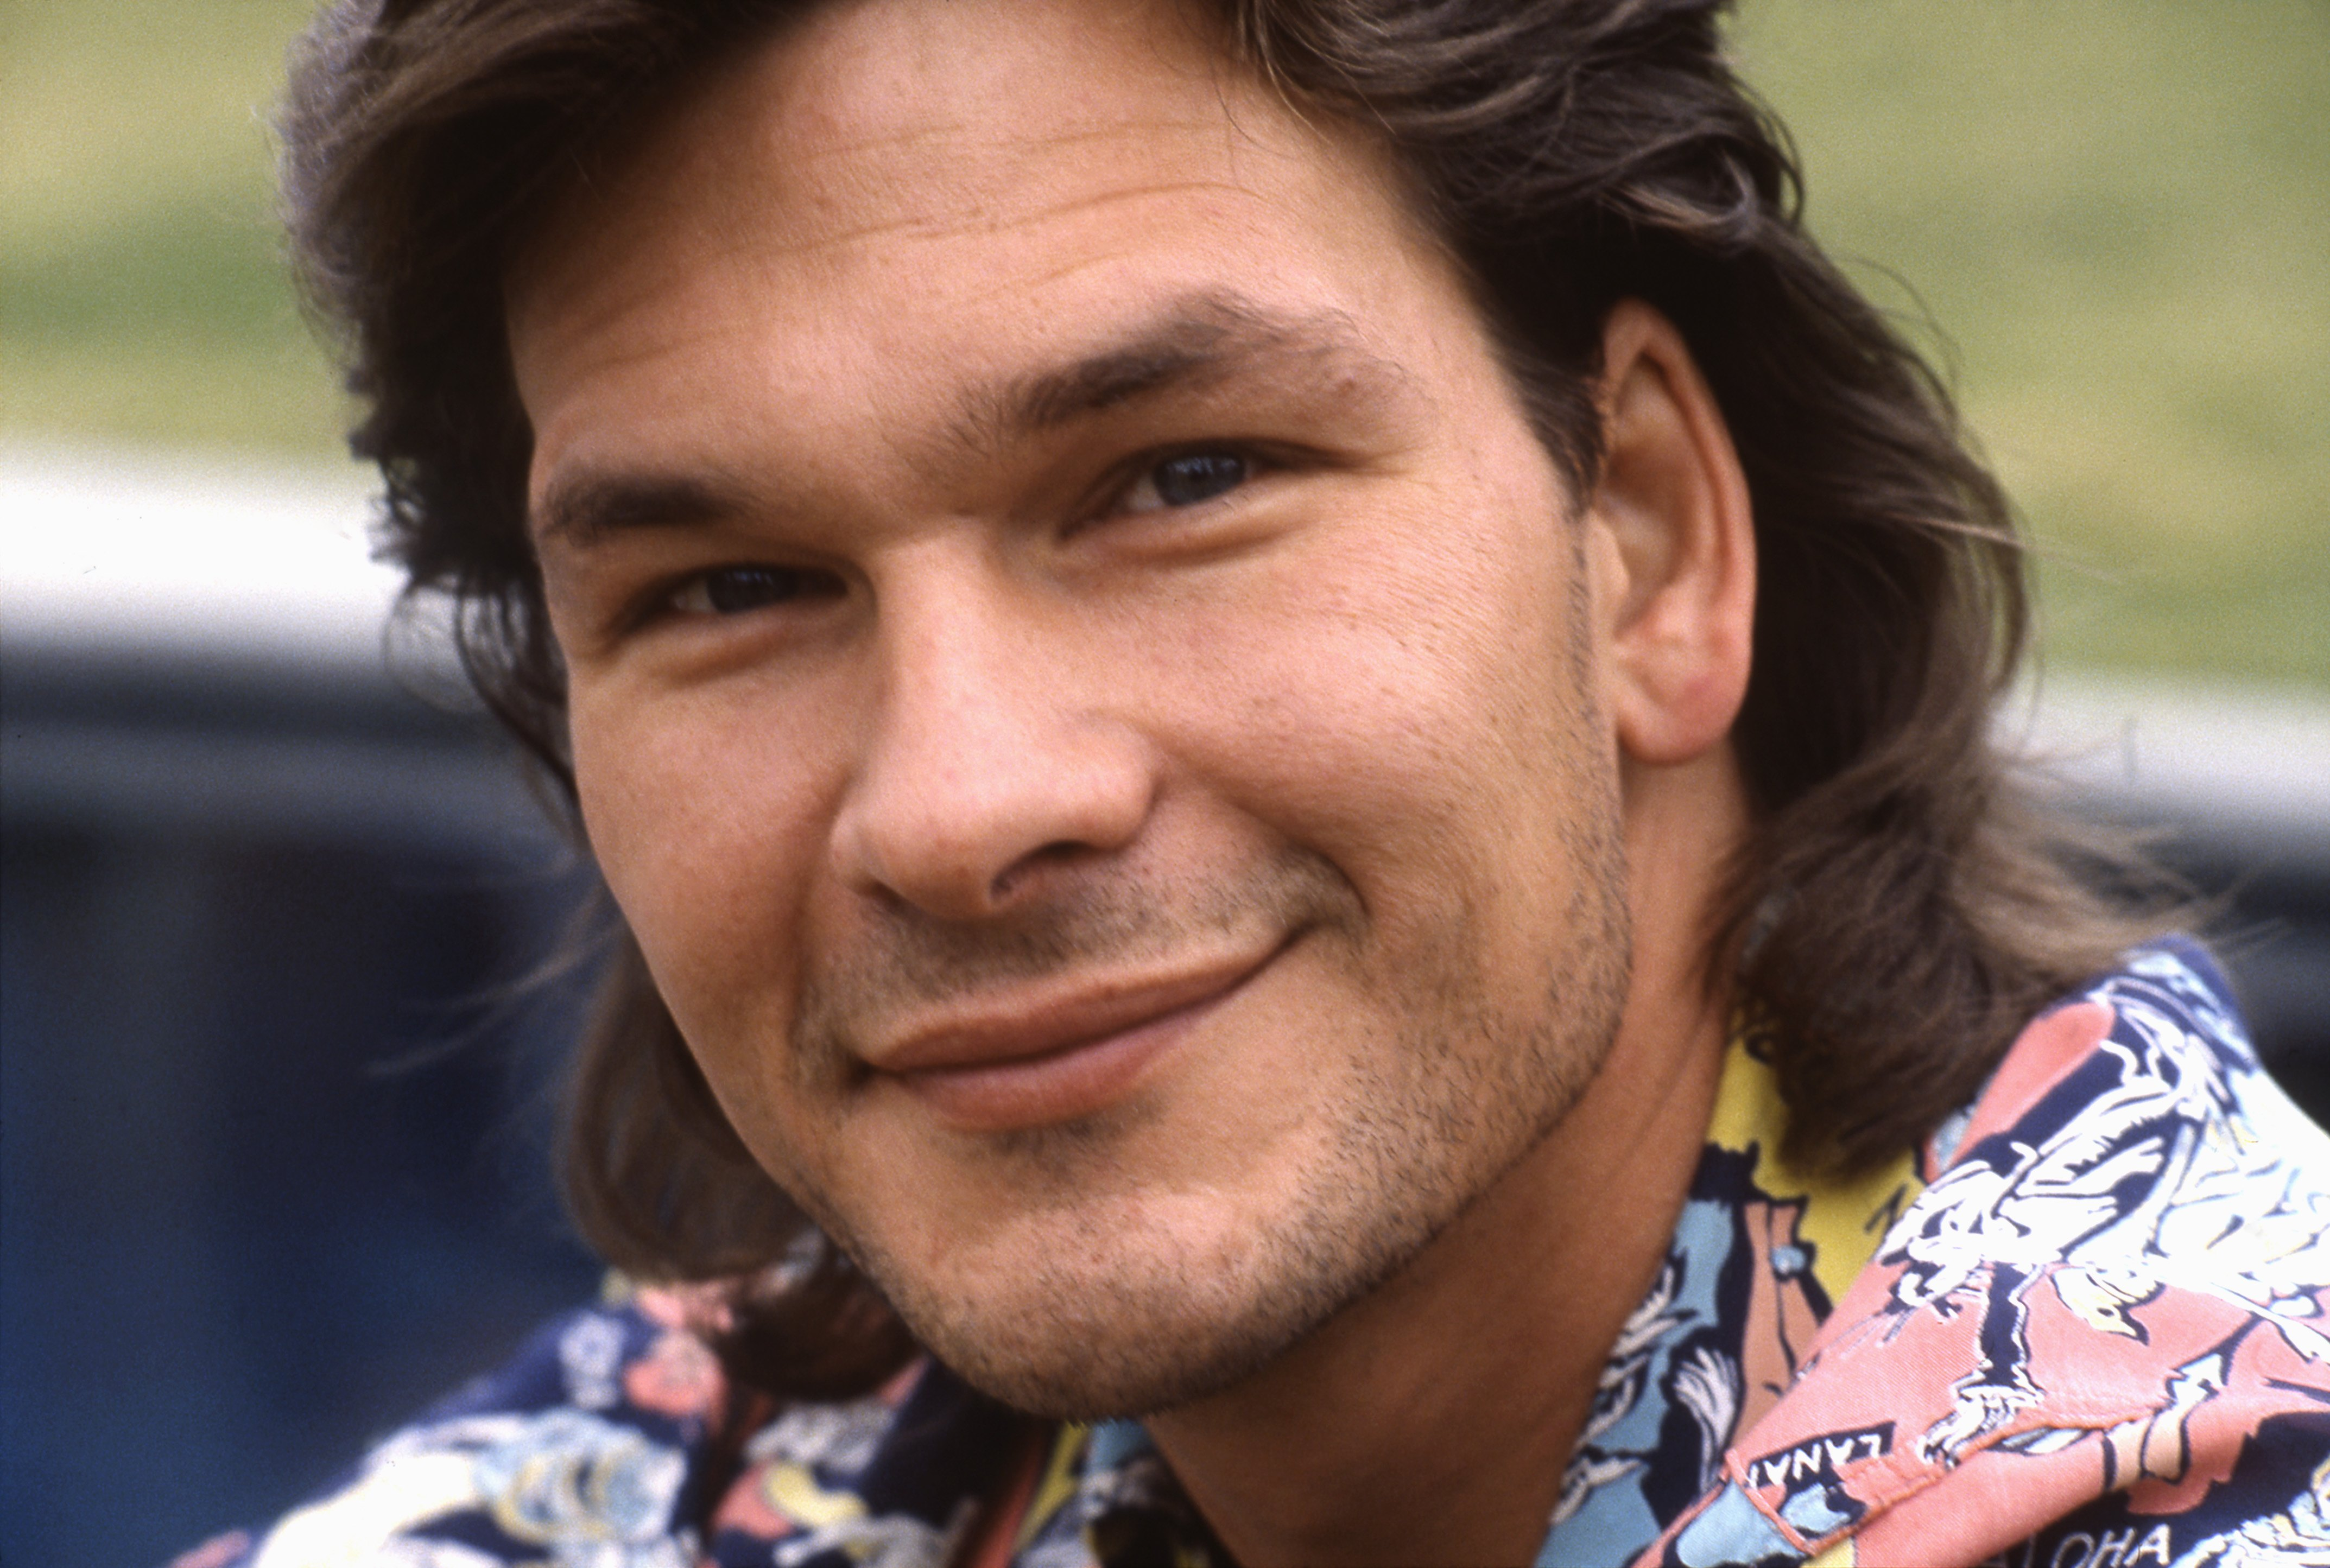 Patrick Swayze's Close Friends Share Memories Of His Amazing Life (EXCLUSIVE)